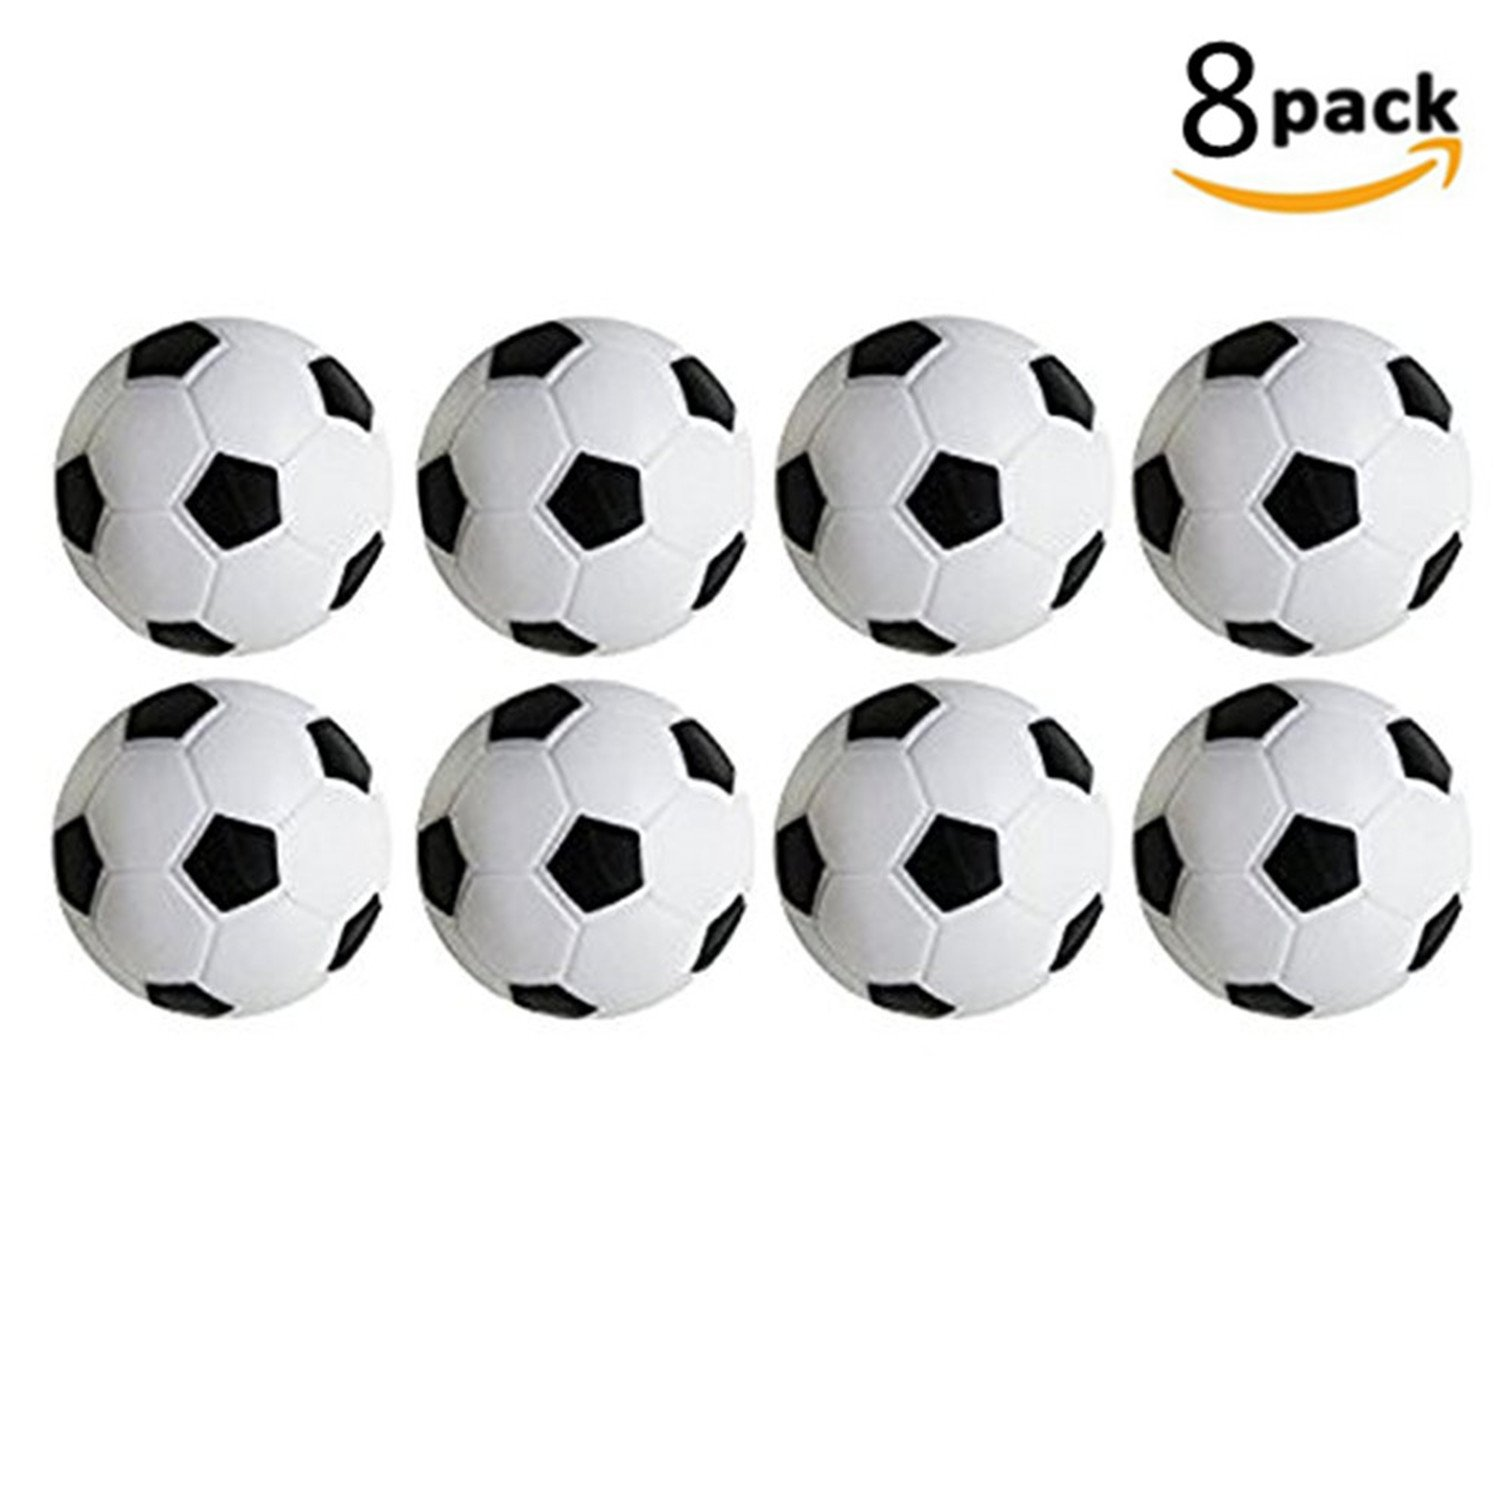 WIN Table Soccer Foosballs Replacements Black and White Soccer Balls Set Of 8 PCS